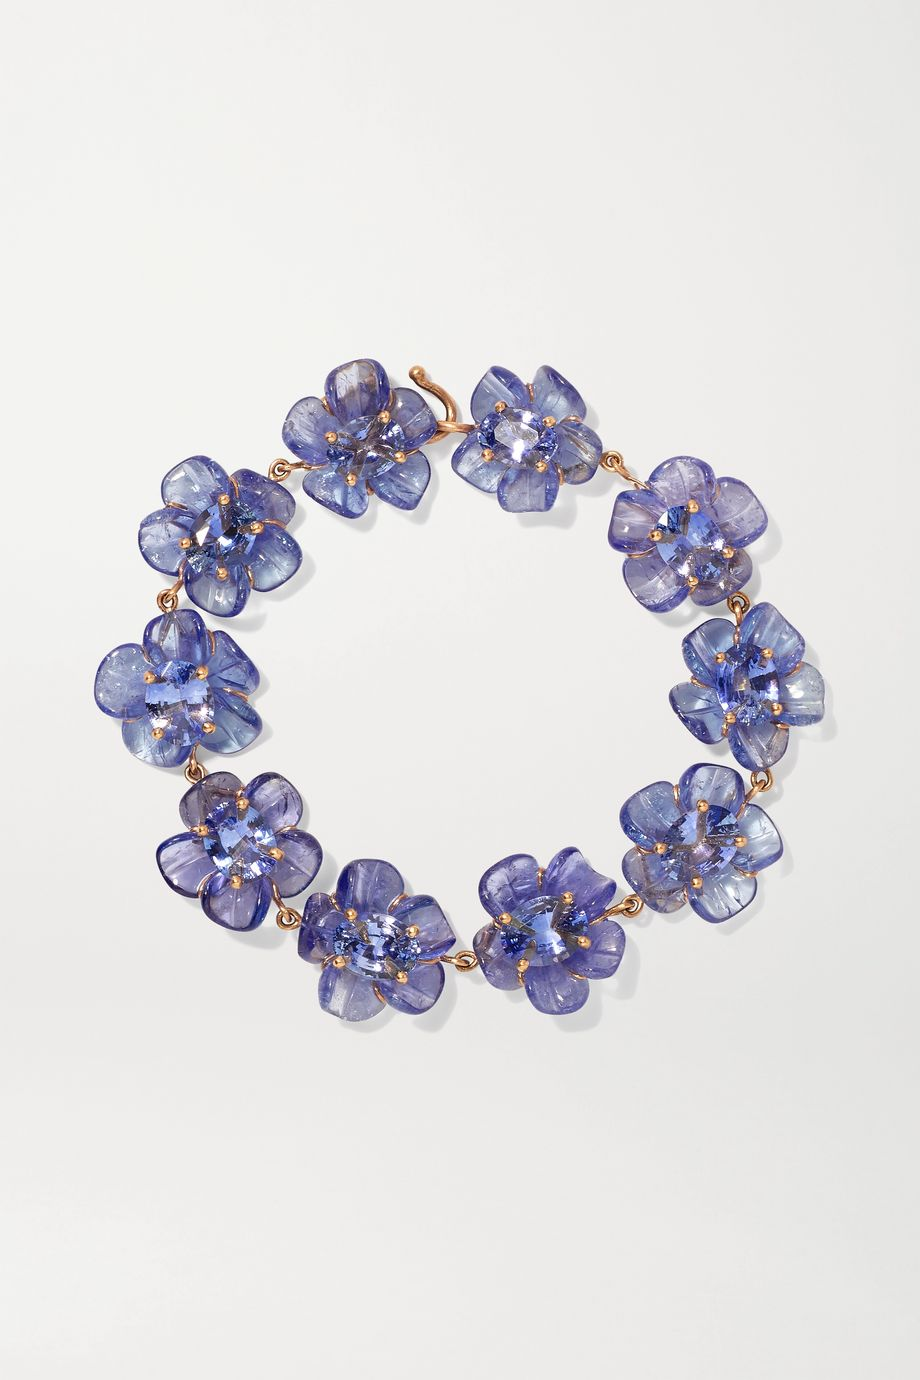 Irene Neuwirth Tropical Flower 18-karat rose gold, tanzanite and sapphire bracelet